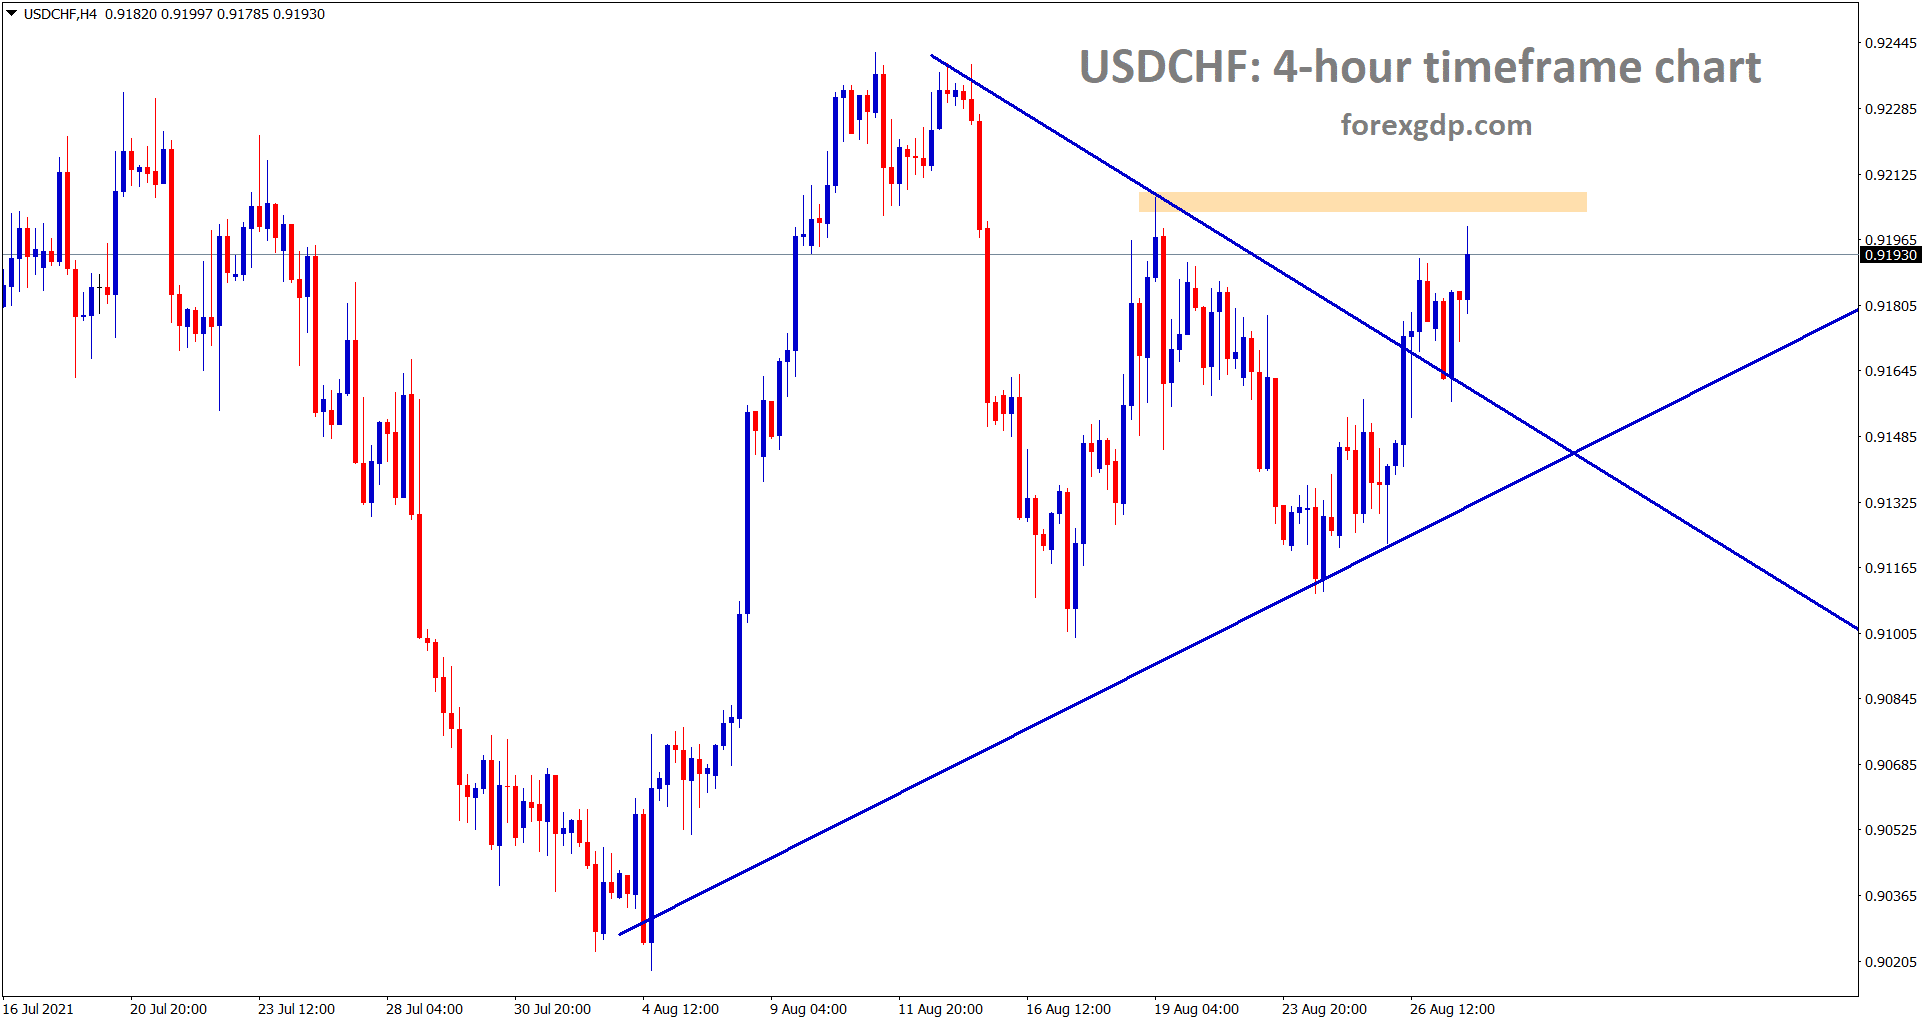 USDCHF is near to the resistance after breaking the symmetrical triangle pattern